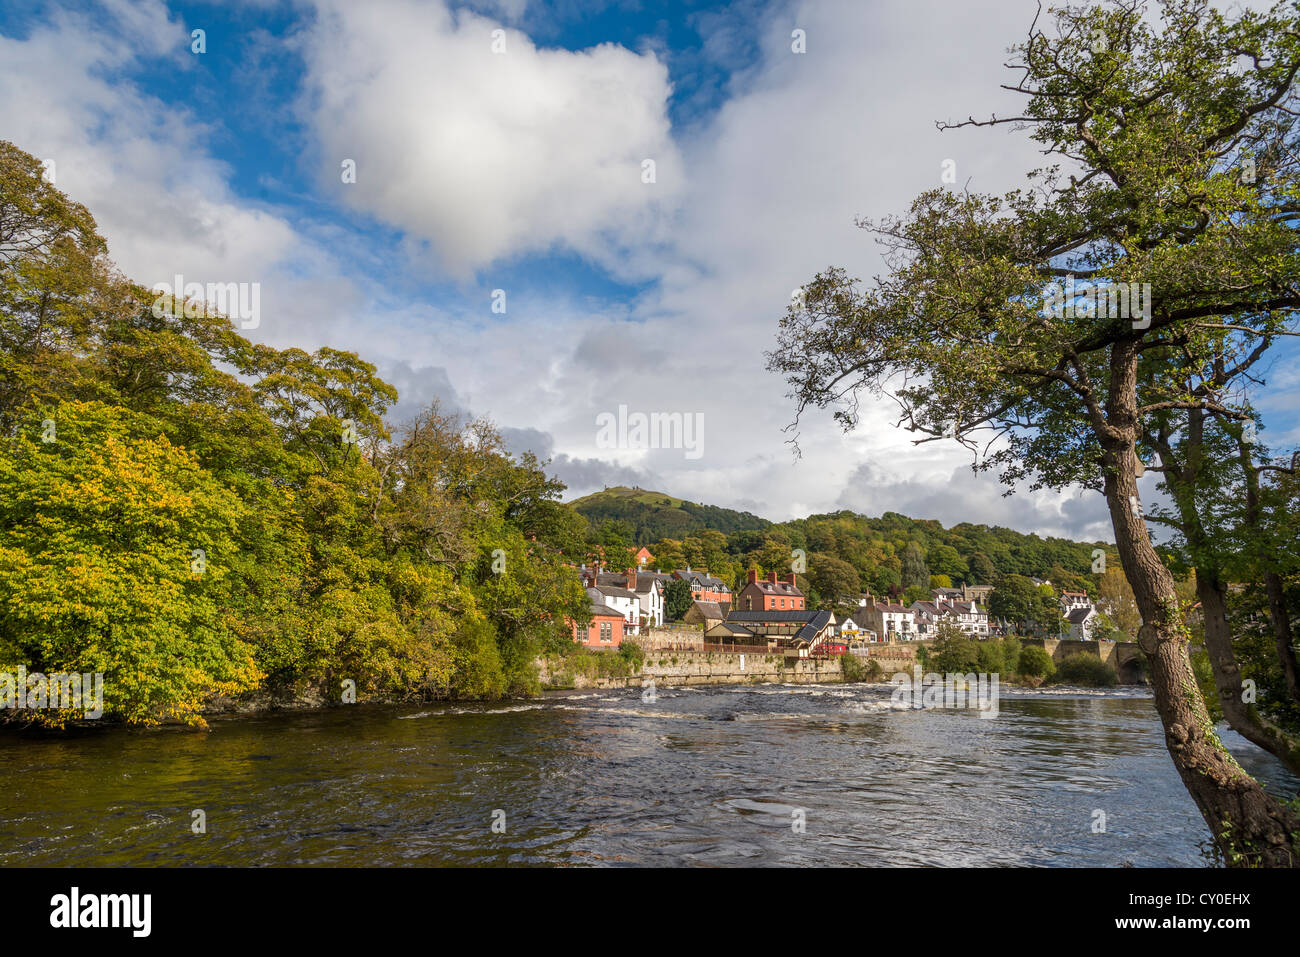 The river Dee at Llangollen in North Wales. Stock Photo